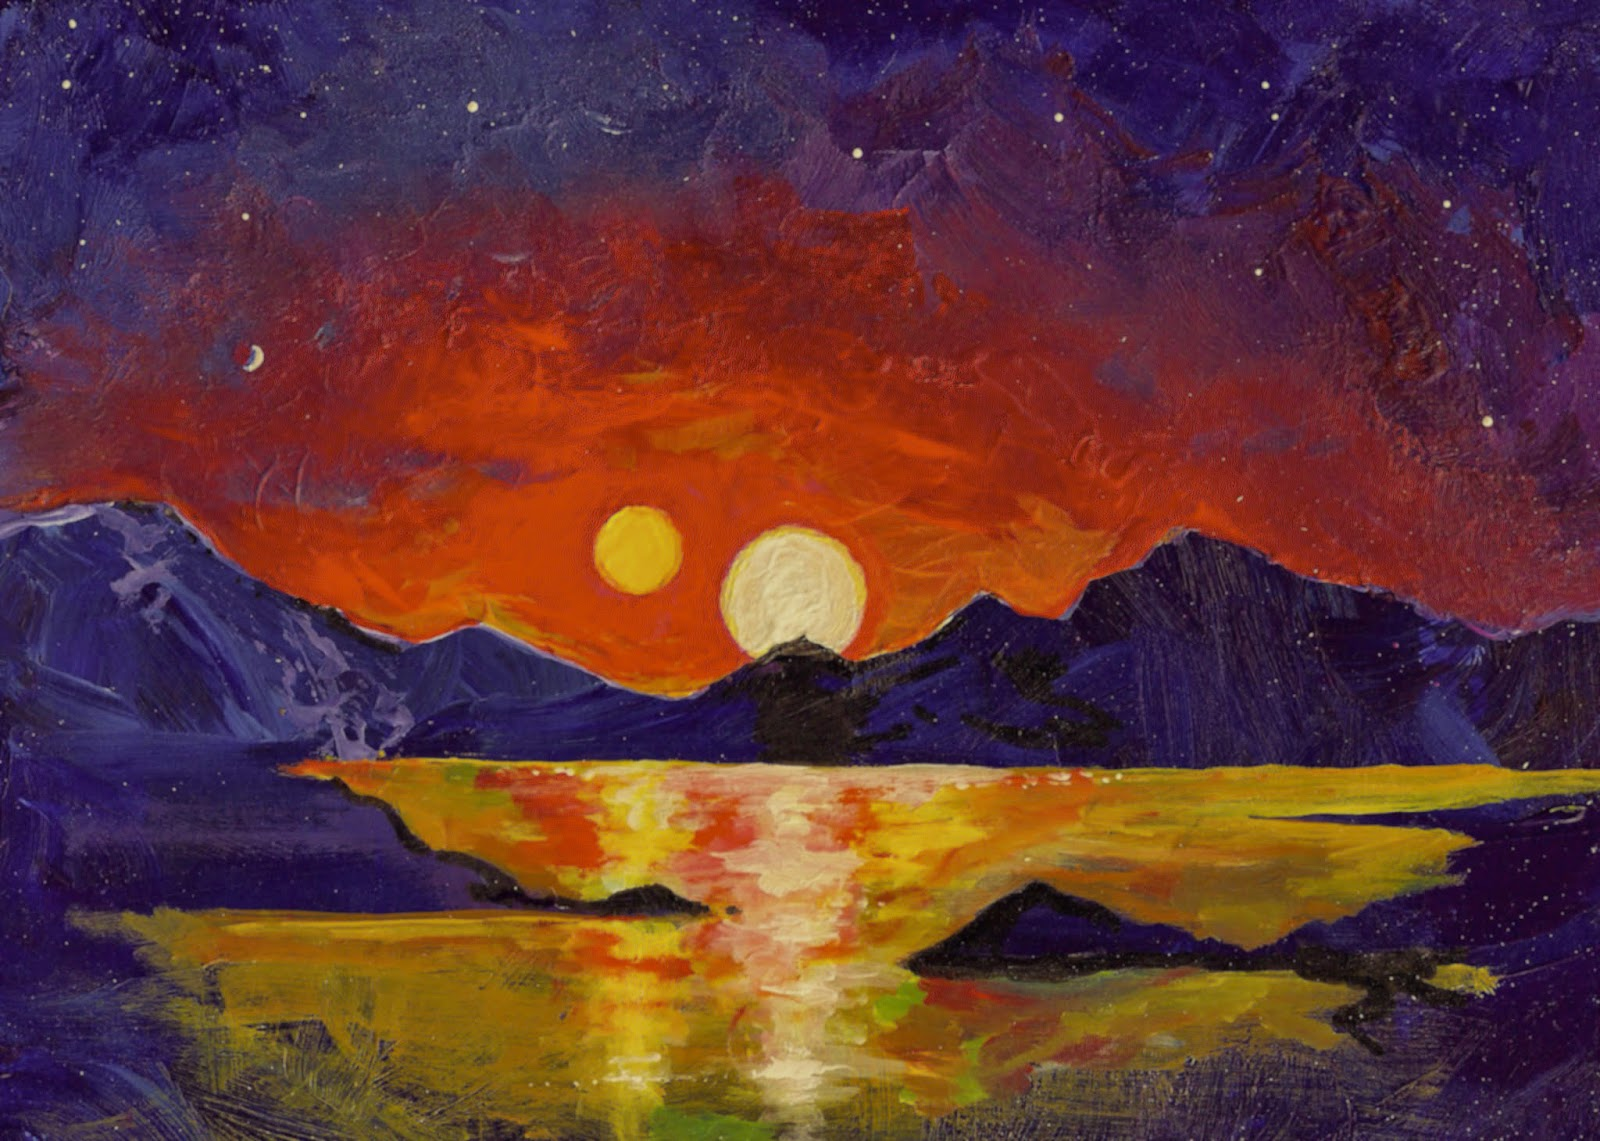 "In this acrylic painting, University of Utah astrophysicist Ben Bromley envisions the view of a double sunset from an uninhabited Earthlike planet orbiting a pair of binary stars. In a new study, Bromley and Scott Kenyon of the Smithsonian Astrophysical Observatory performed mathematical analysis and simulations showing that it is possible for a rocky planet to form around binary stars, like Luke Skywalker's home planet Tatooine in the ""Star Wars"" films. So far, NASA's Kepler space telescope has found only gas-giant planets like Saturn or Neptune orbiting binary stars. Photo Credit: Ben Bromley, University of Utah"